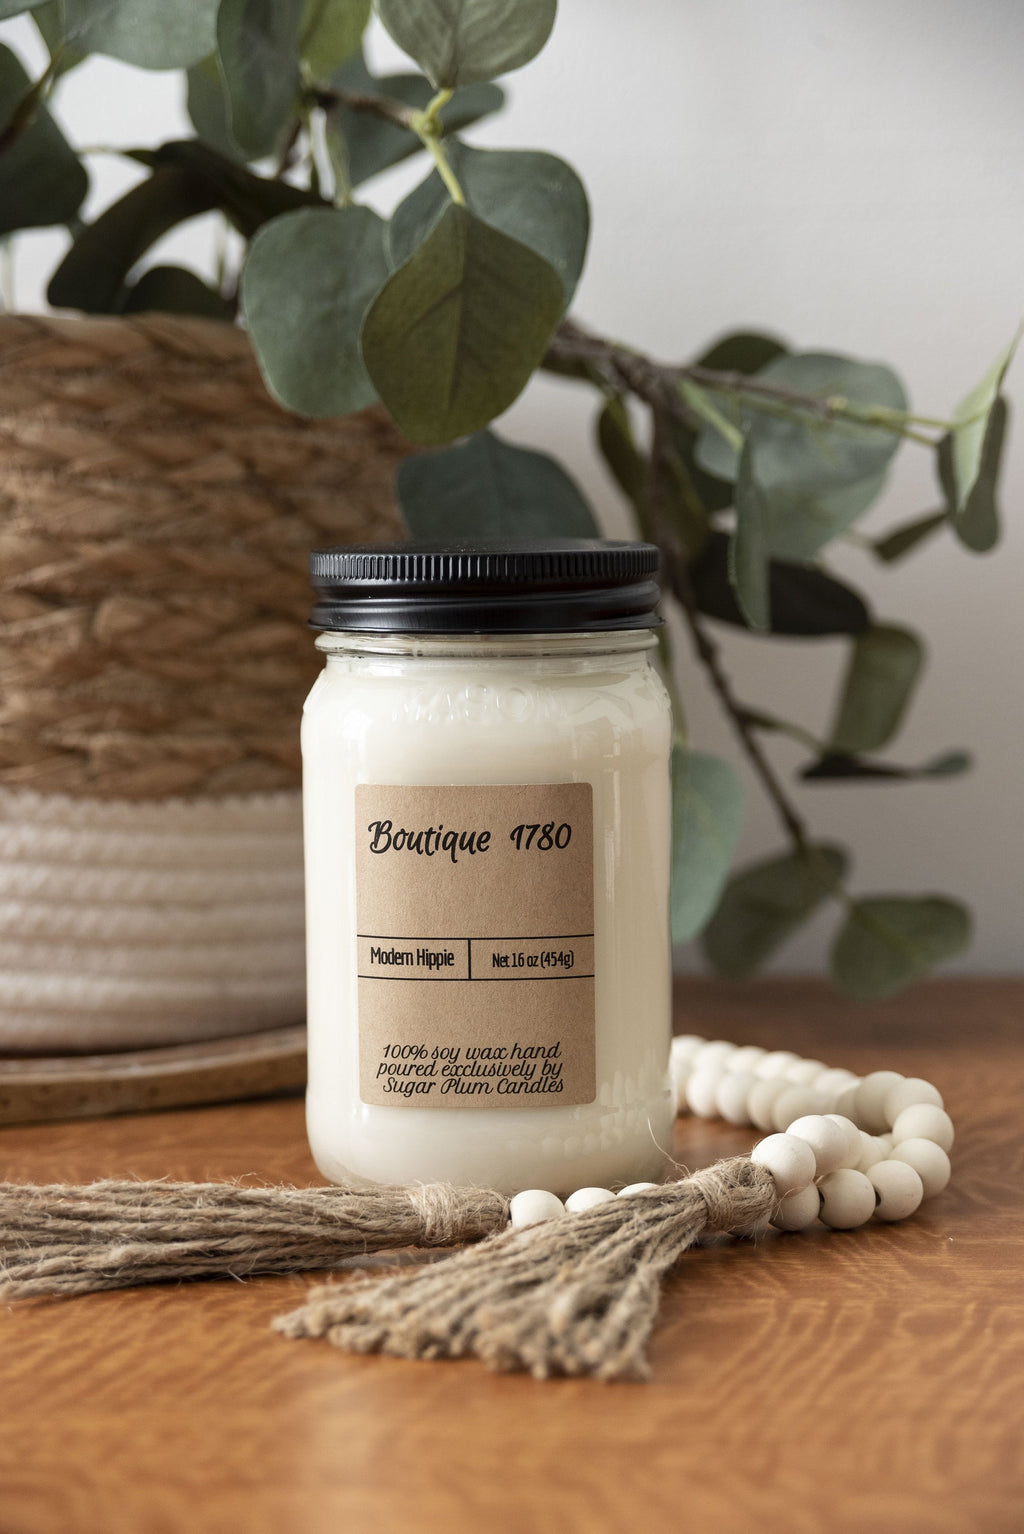 Modern Hippie Boutique 1780 Signature Candle - Boutique 1780